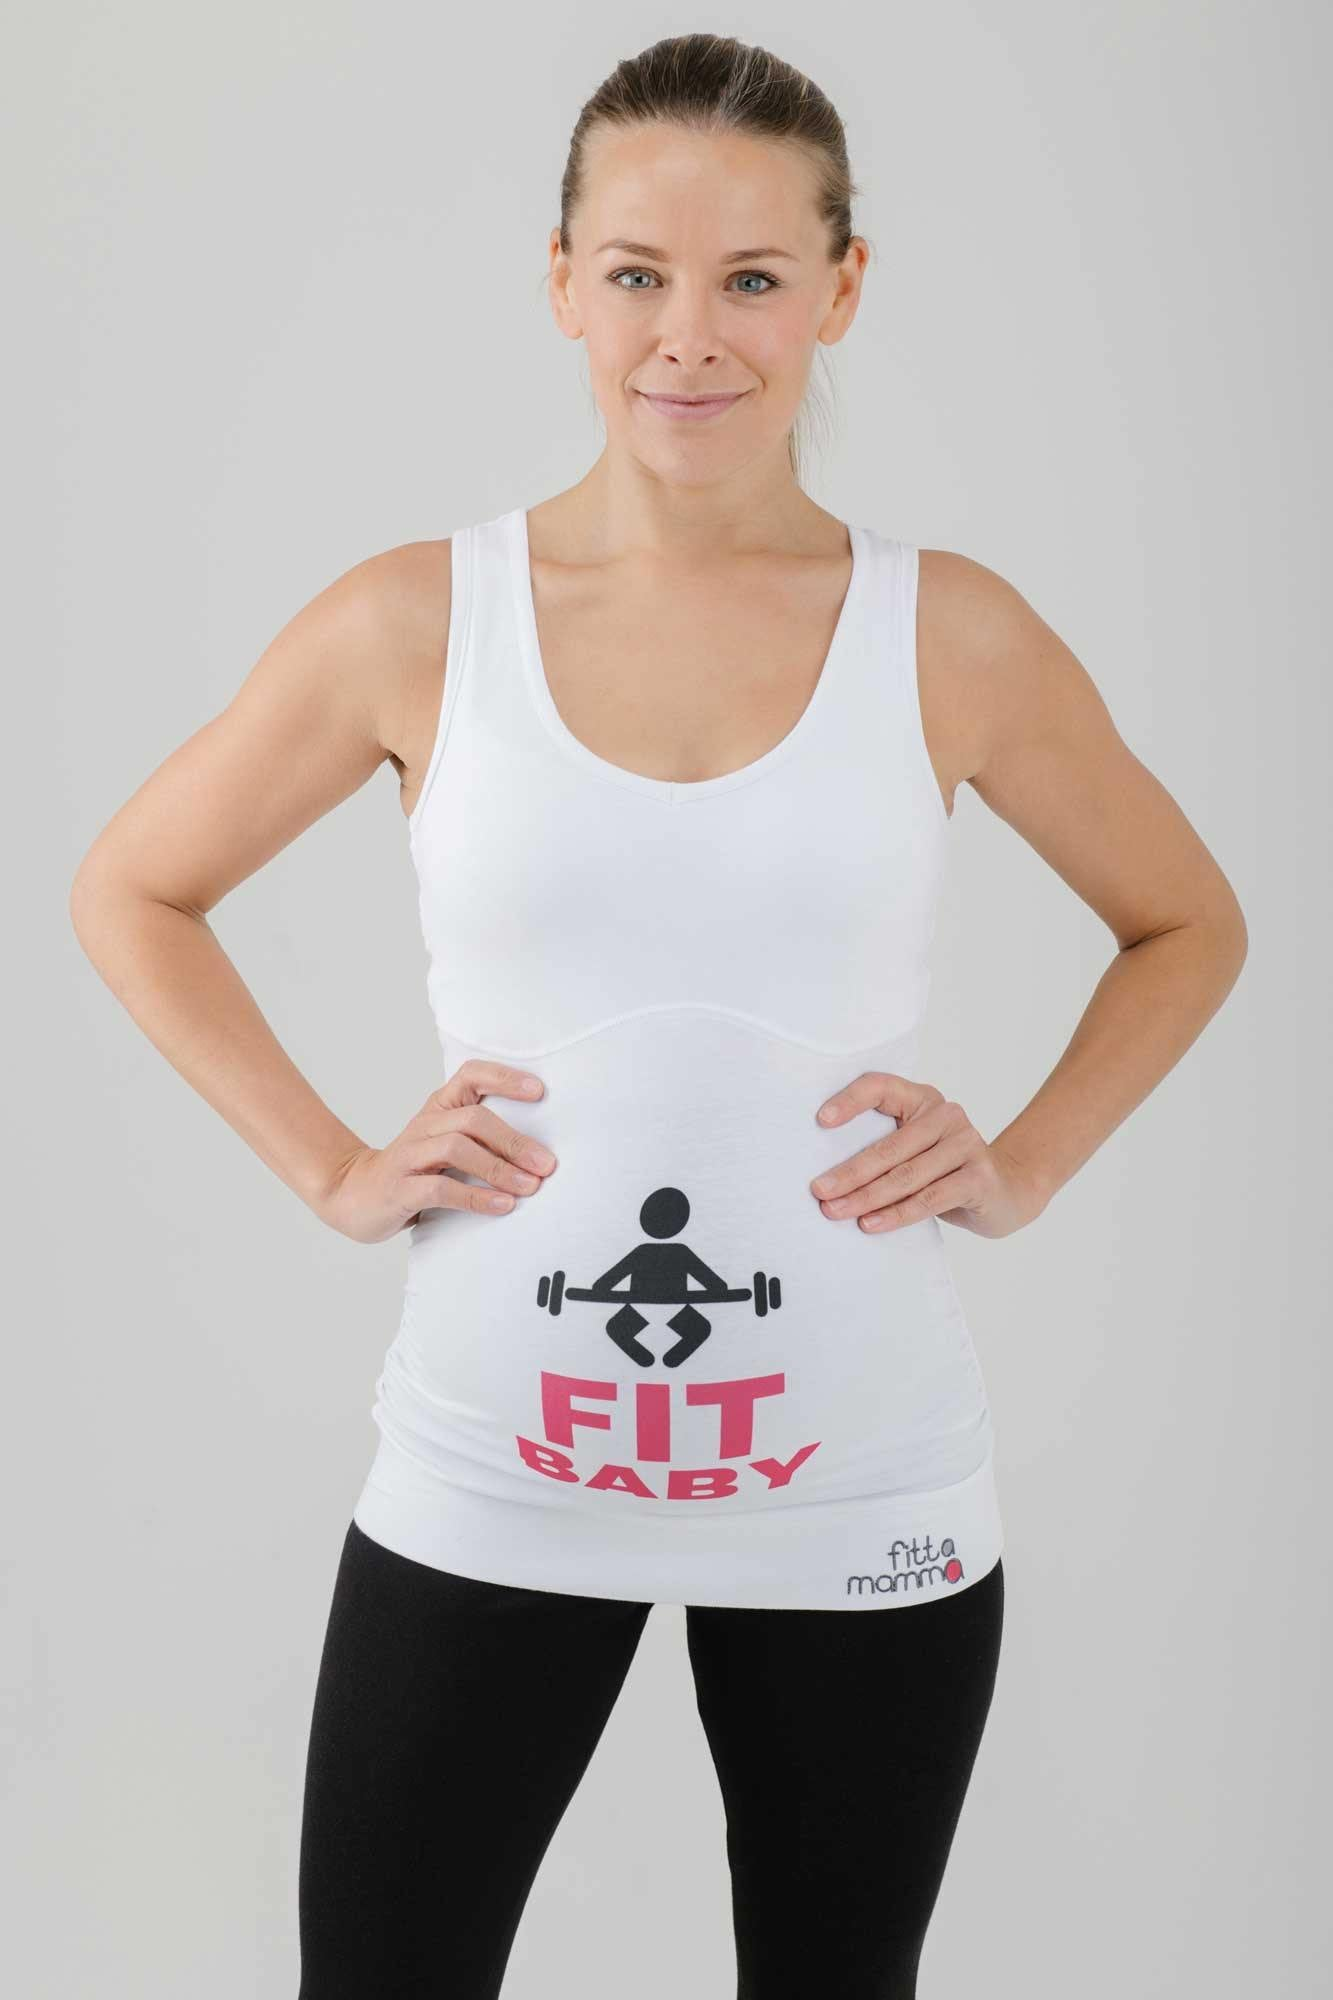 Fit Baby Maternity Workout Support Top - FittaMamma